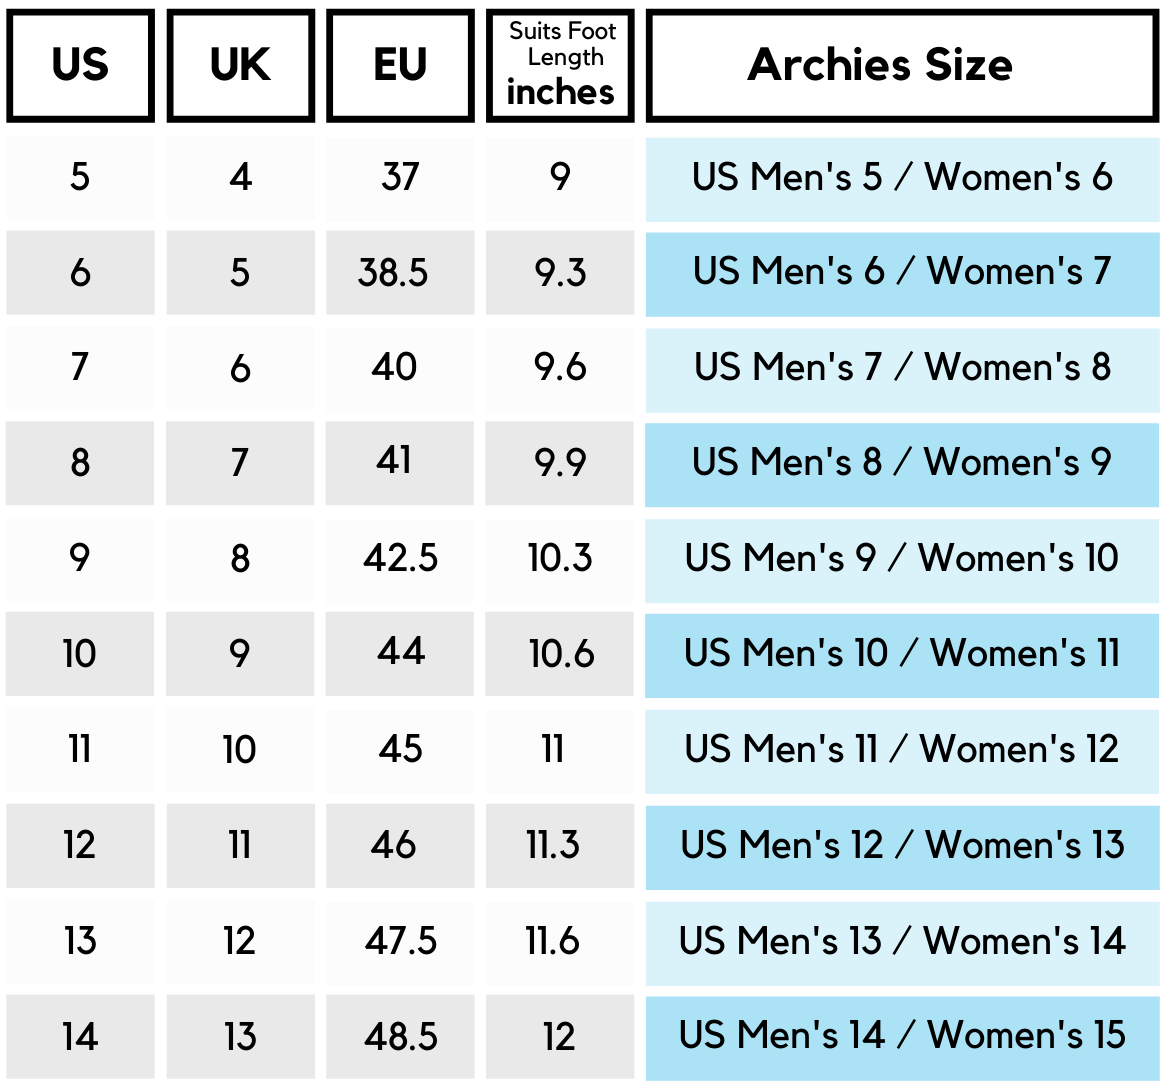 US Men's Size Guide